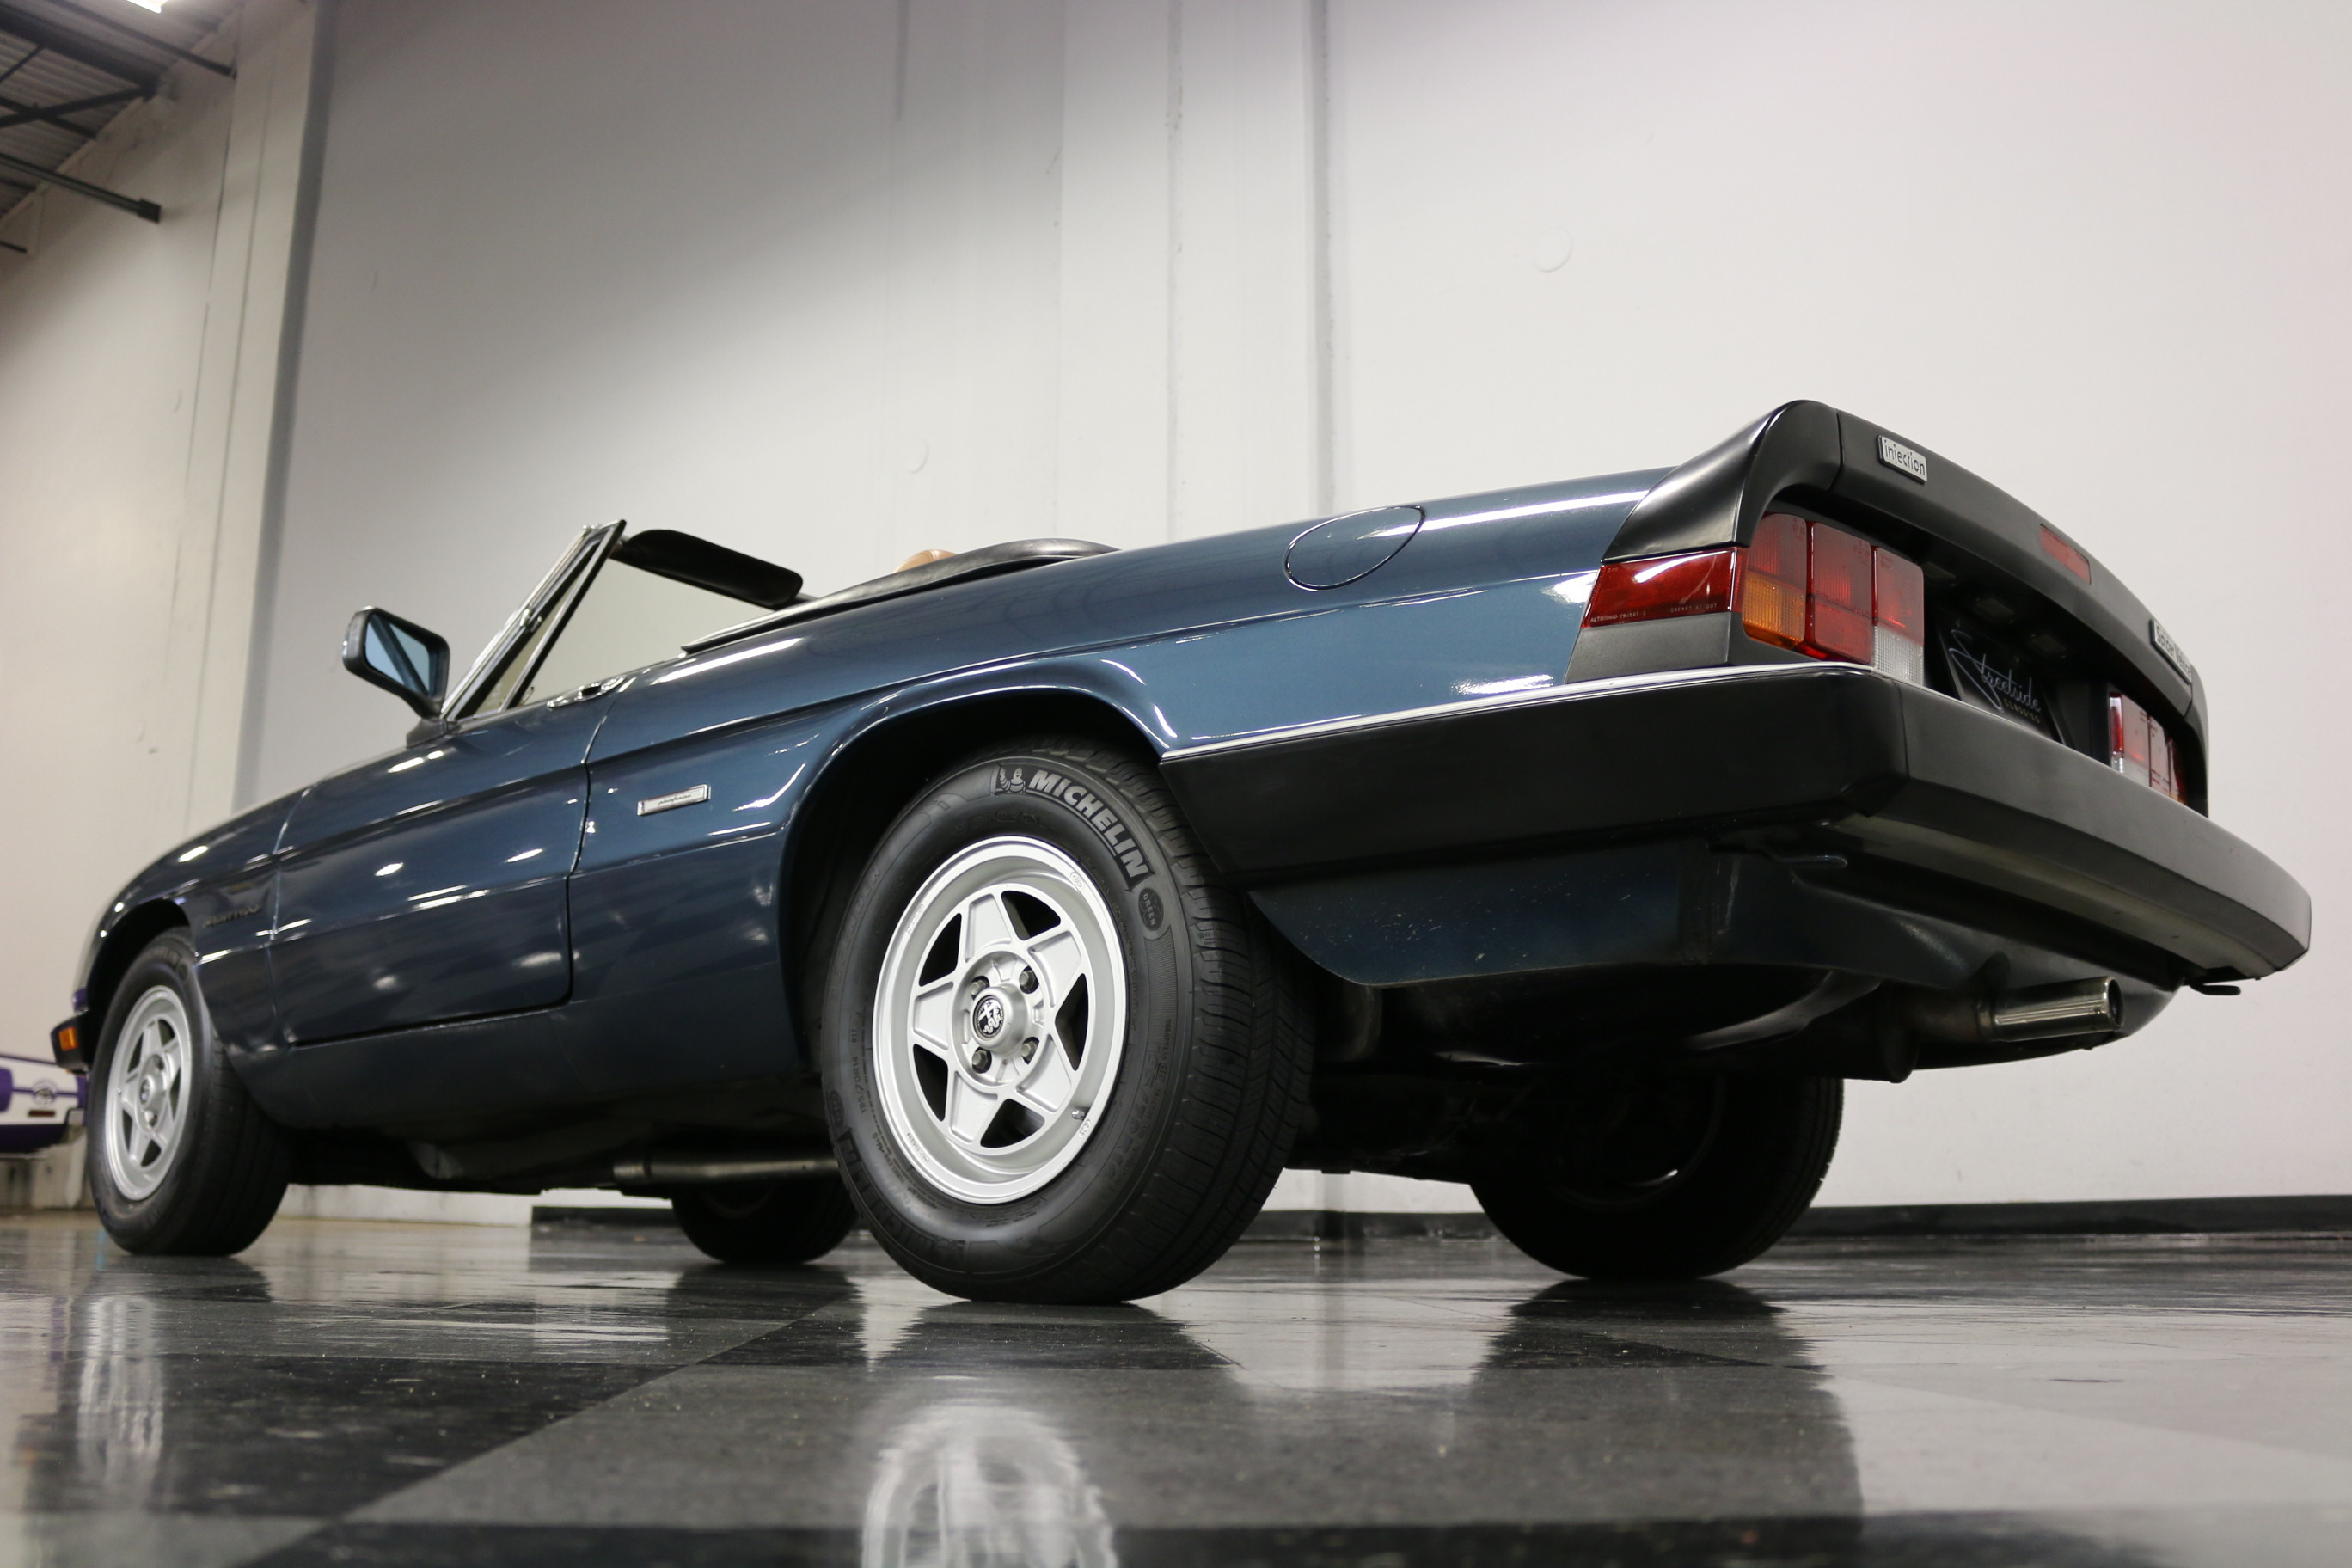 1988 Alfa Romeo Spider Veloce Veloce Convertible 2-Door: BEAUTIFUL SURVIVOR! VERY SOLID TEXAS CAR! ORIG STEEL/PAINT, RARE COLOR, A/C! WOW